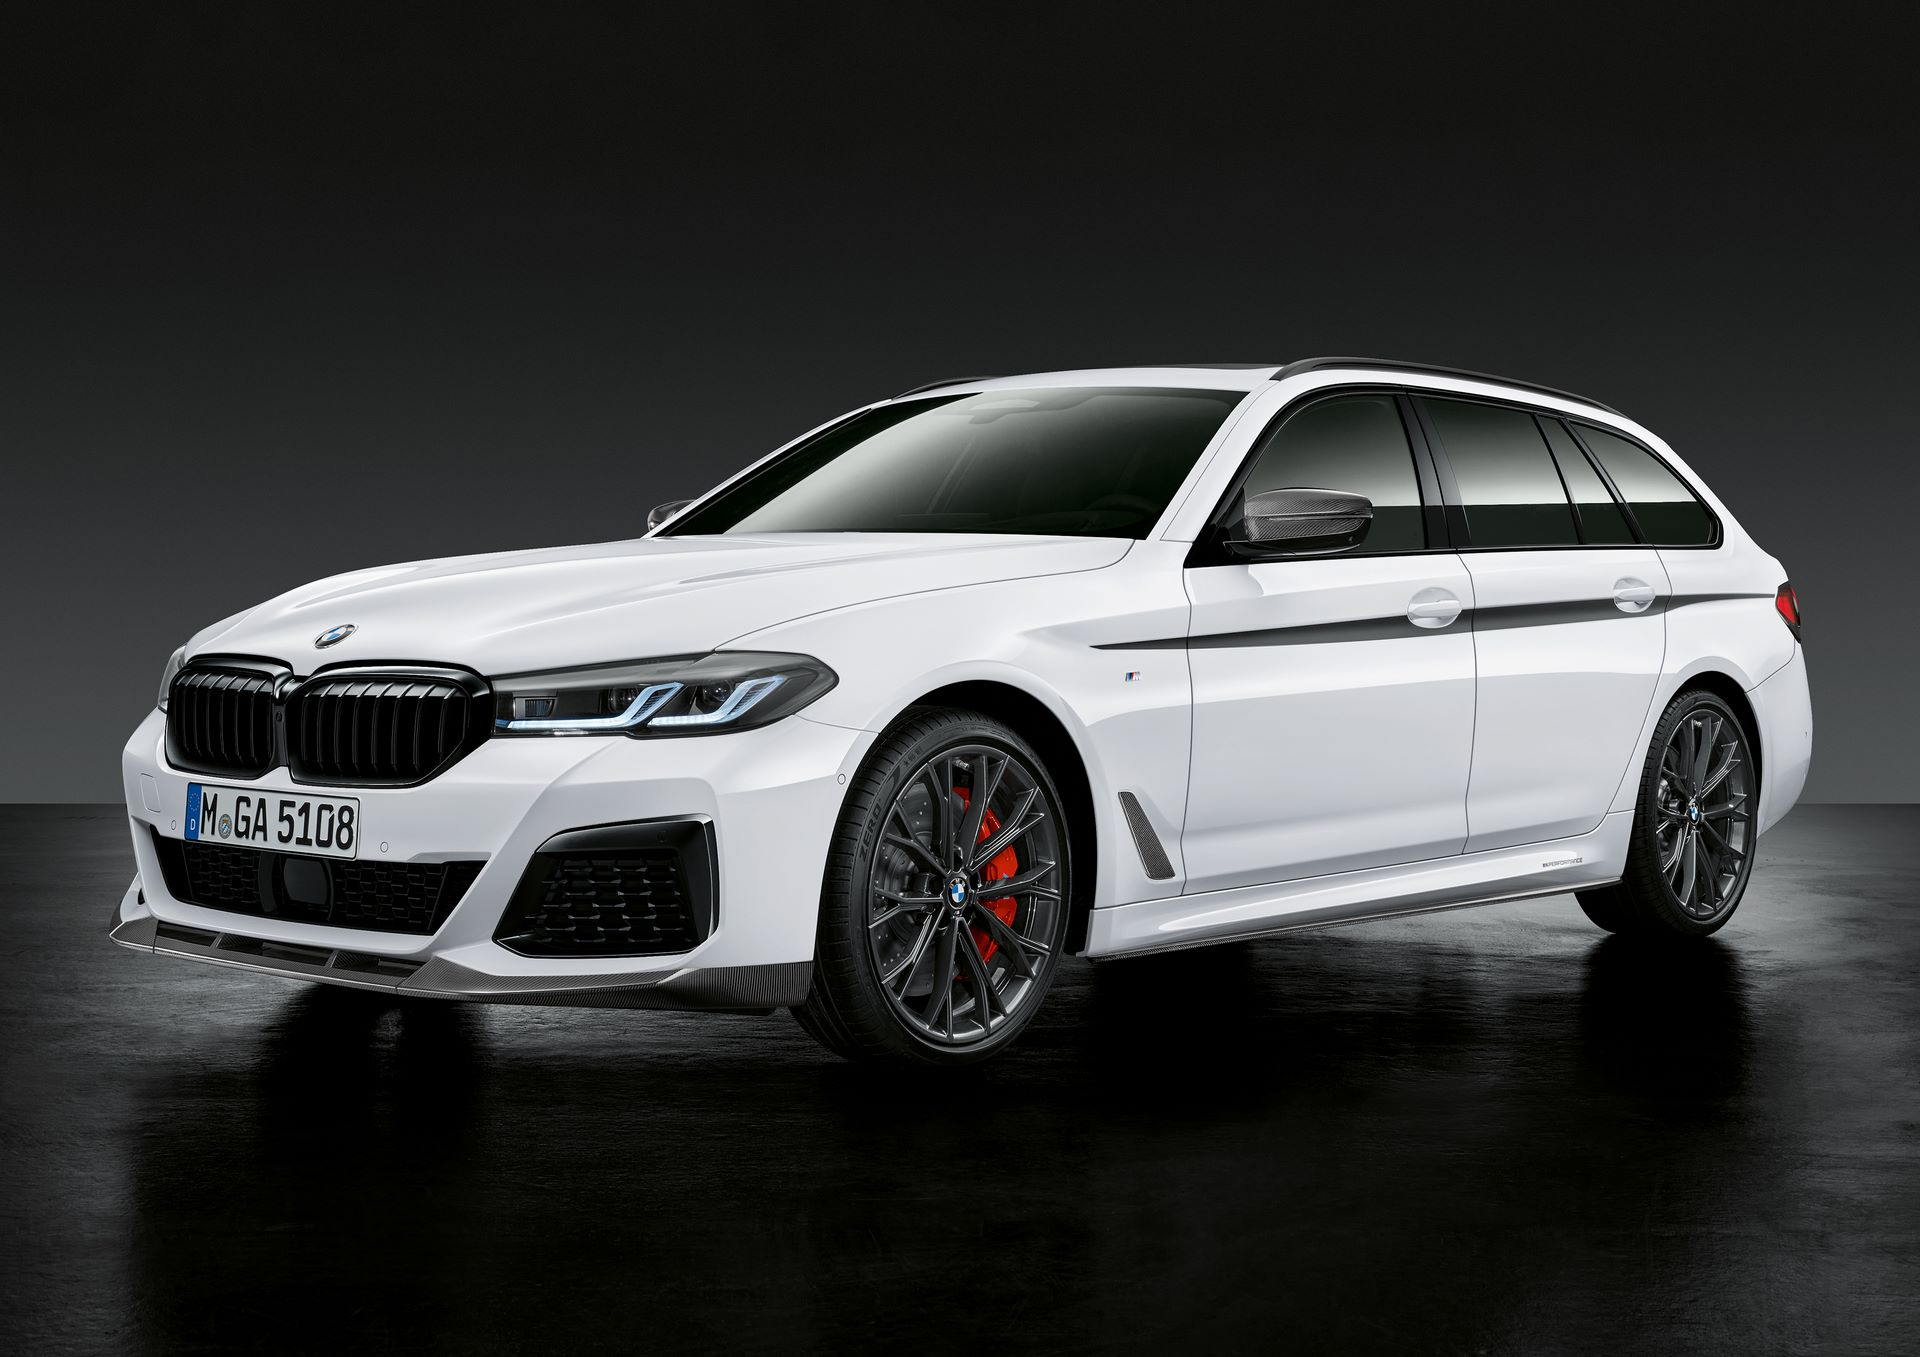 BMW-M-Performance-Parts-for-5-Series-M5-and-M5-Competition-17